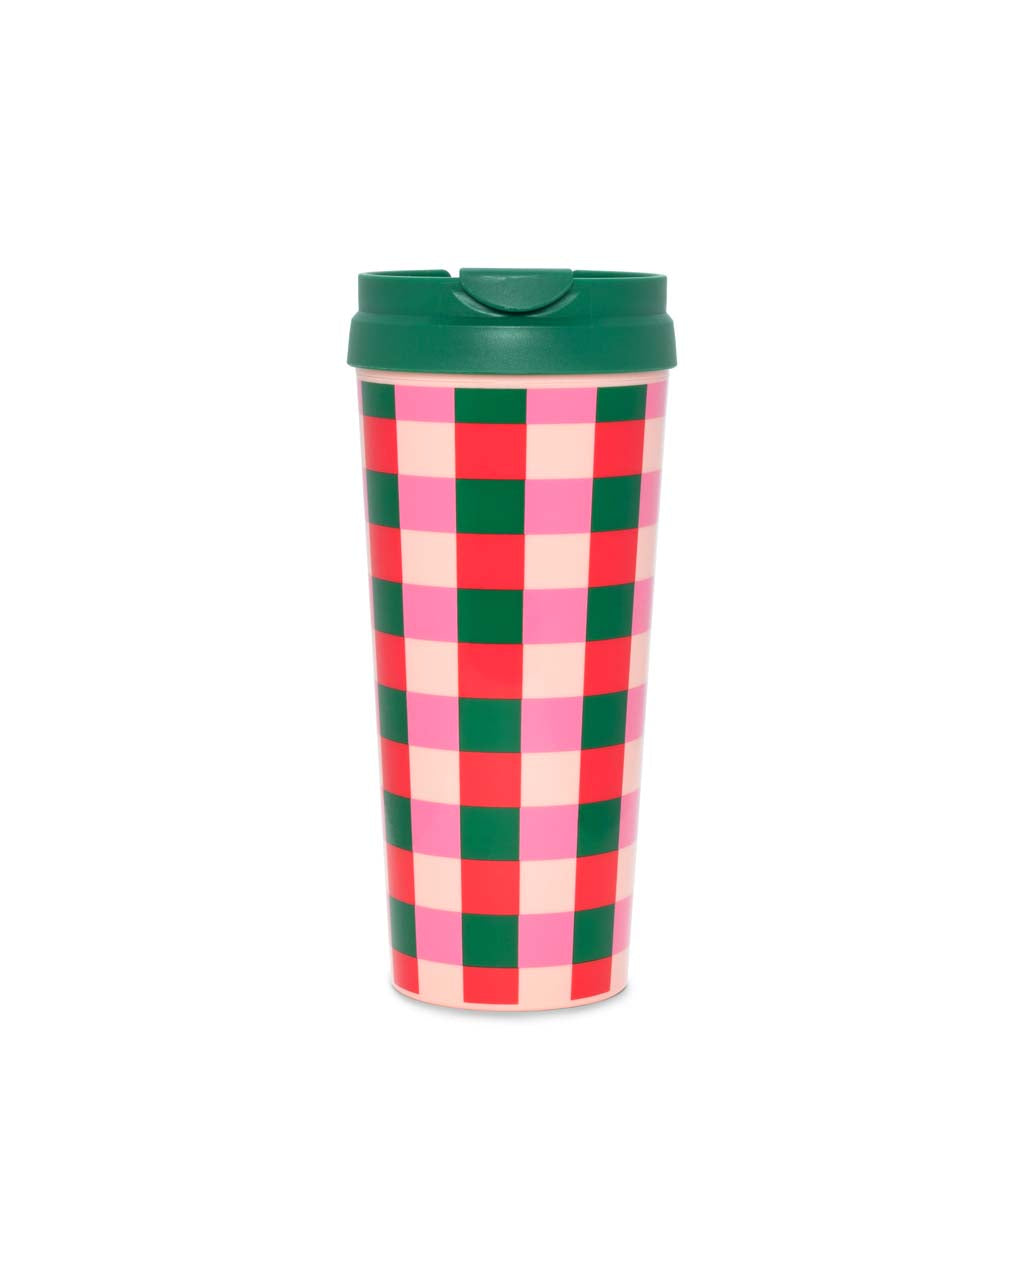 Pink and green plaid insulated thermal mug with a green lid.